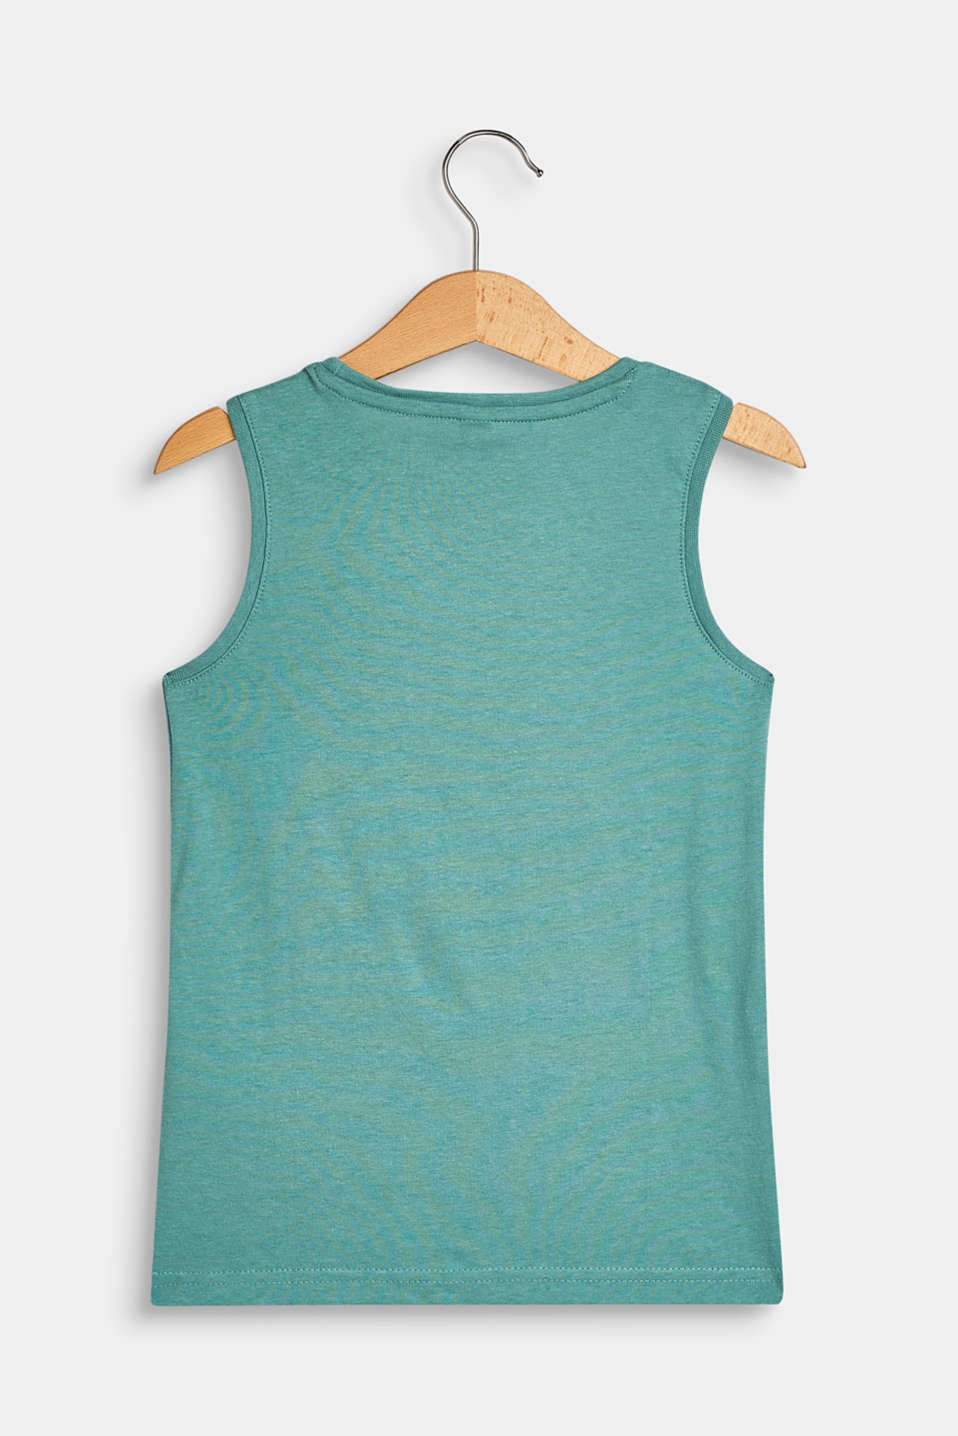 Vest top with a statement print, 100% cotton, SOFT GREEN, detail image number 1